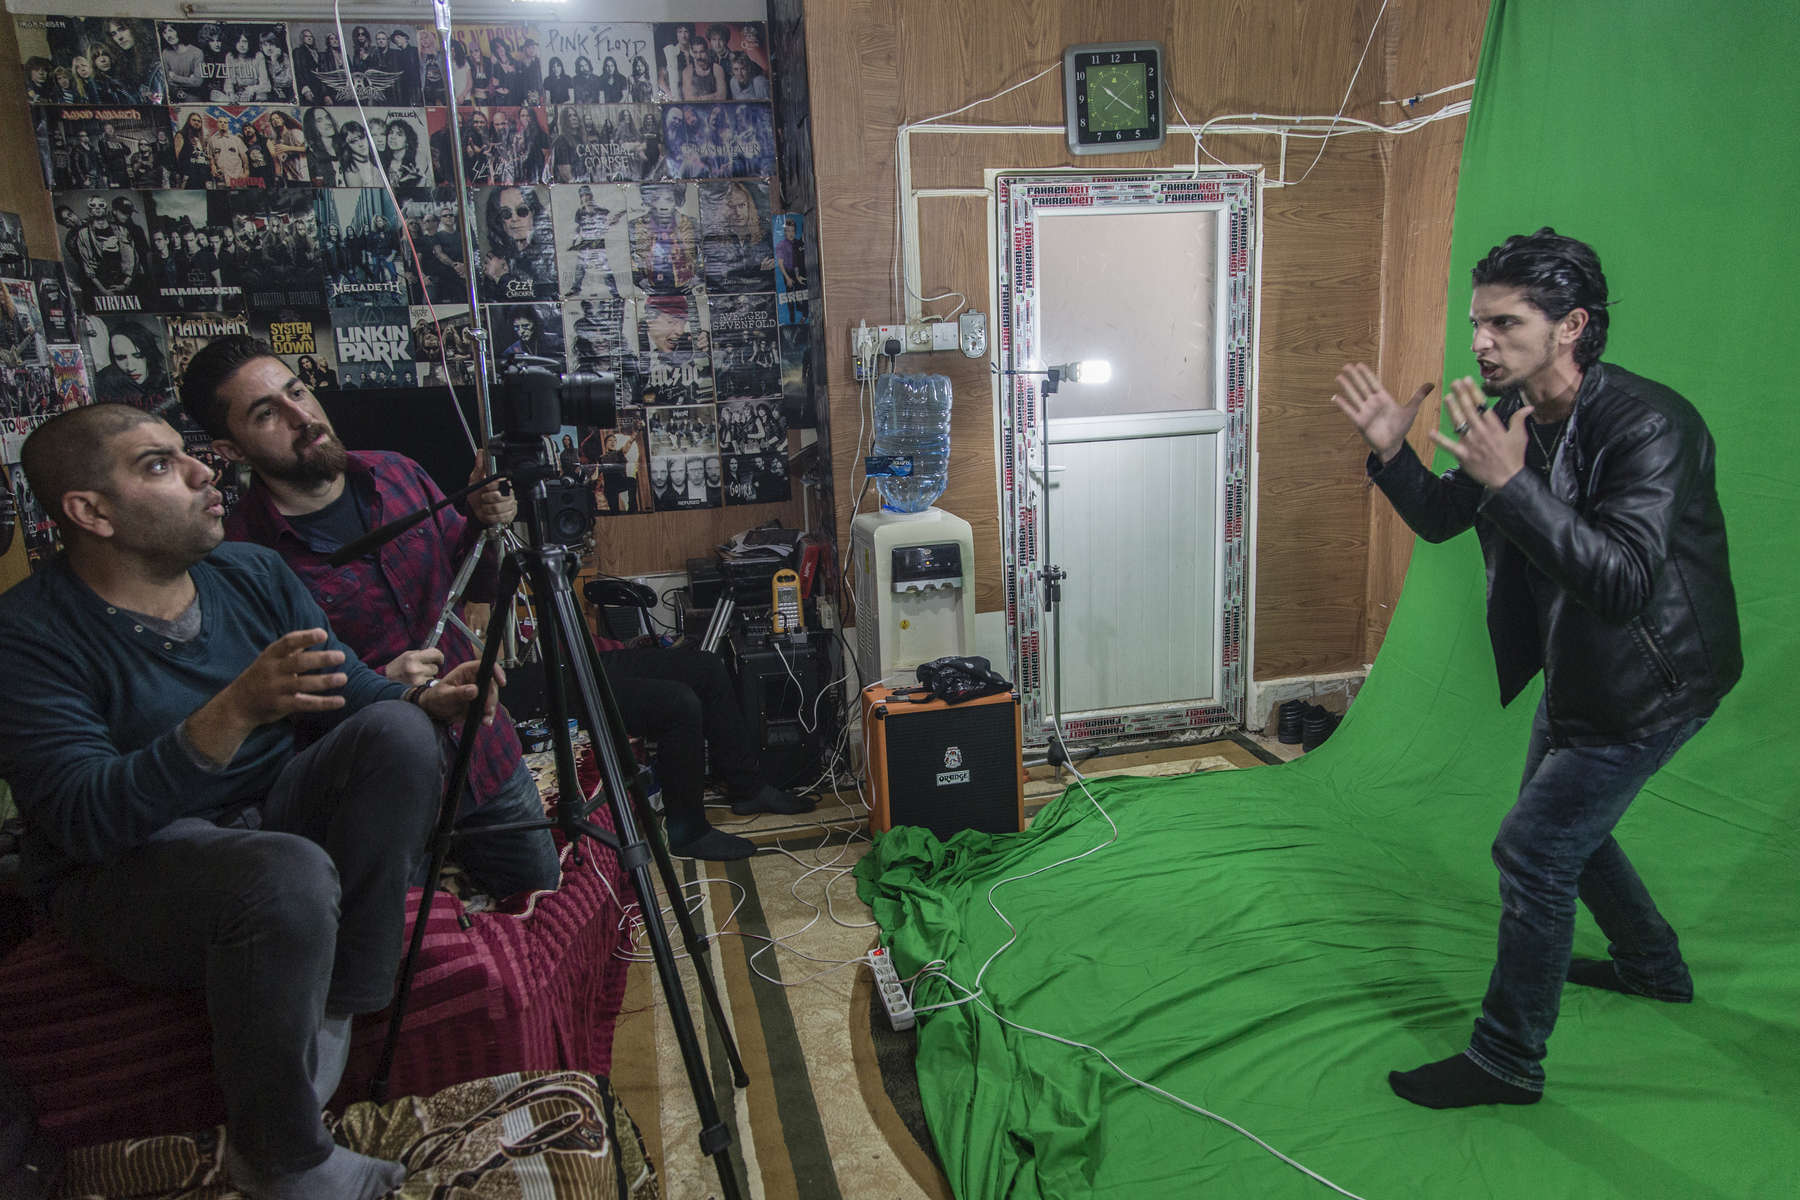 02/04/2016 -- Kirkuk, Iraq -- The Metal band make a video clip for their Song (Nation of dogs)Dark Phantom is the only Metal band in Iraq. They based in Kirkuk and the members are Kurds, Arab, Turkmen.